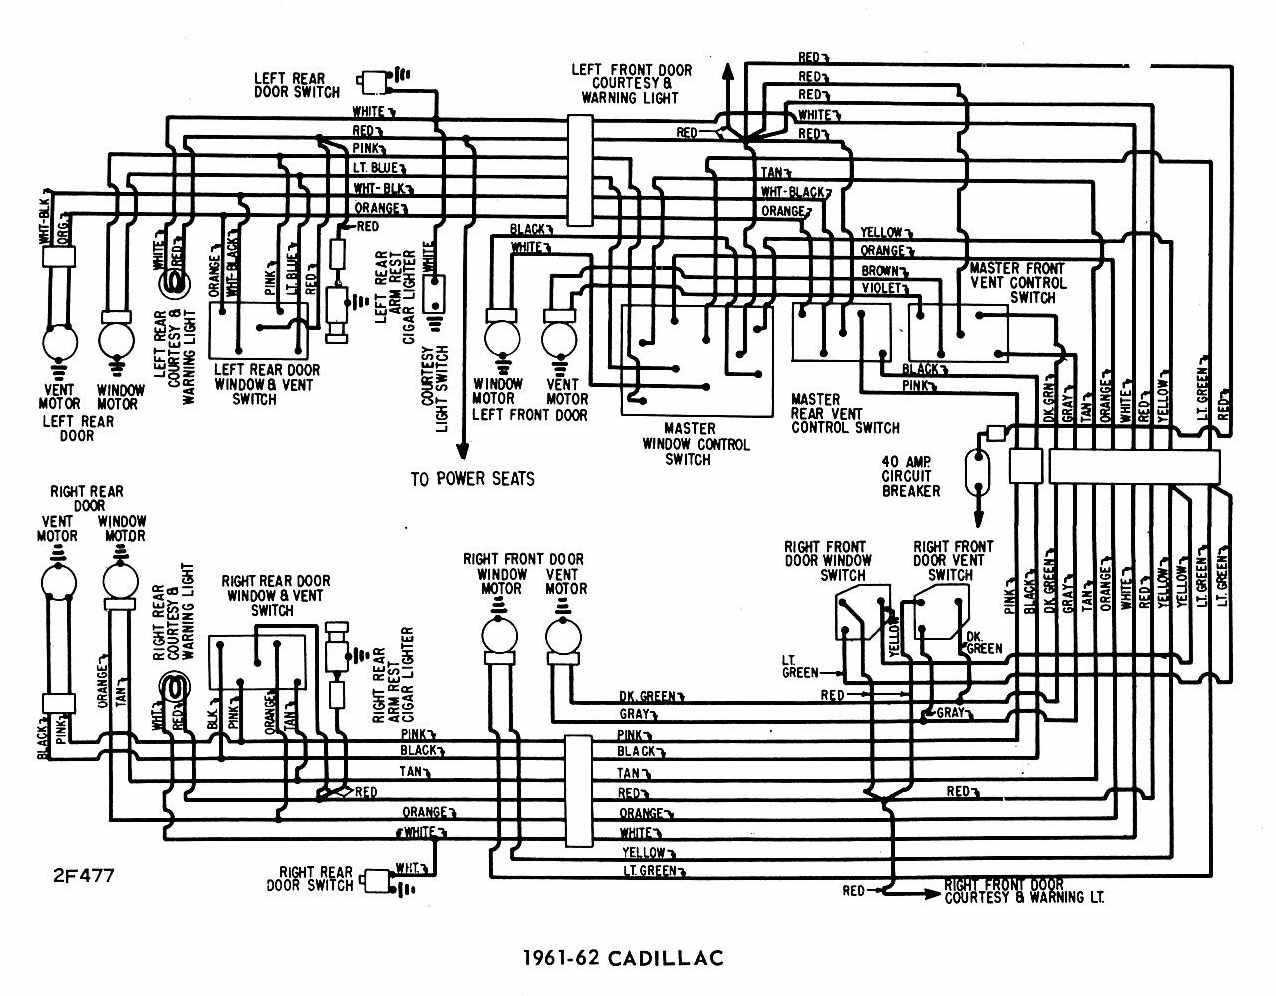 Cadillac 1961-1962 Windows Wiring Diagram